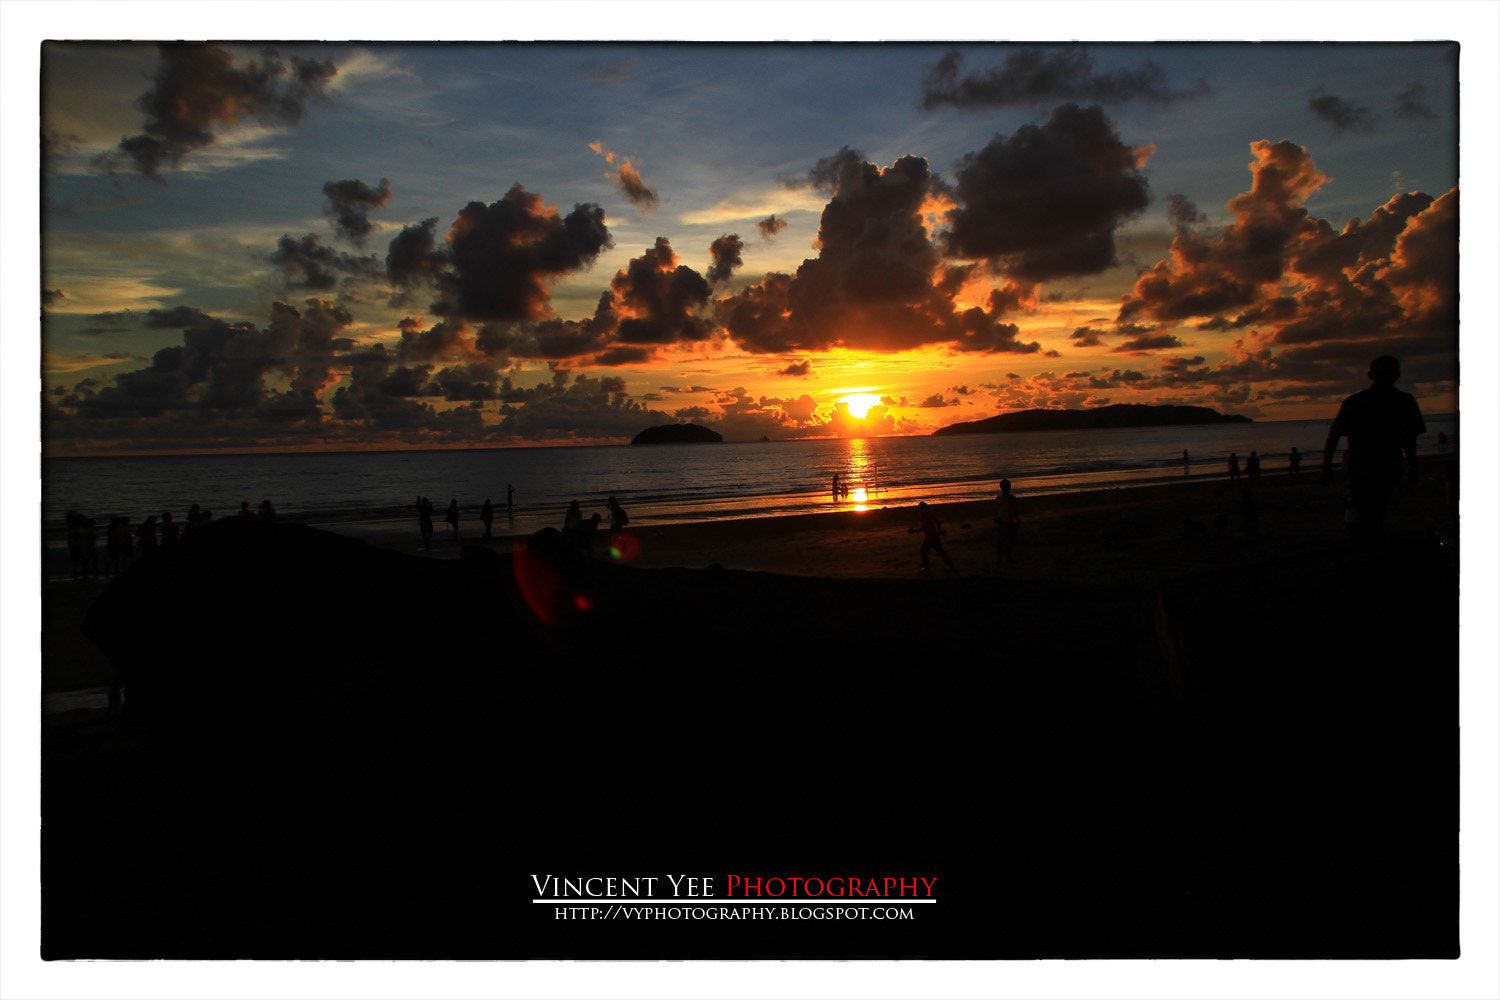 Photograph TANJUNG ARU SUNSET by Vincent Yee on 500px